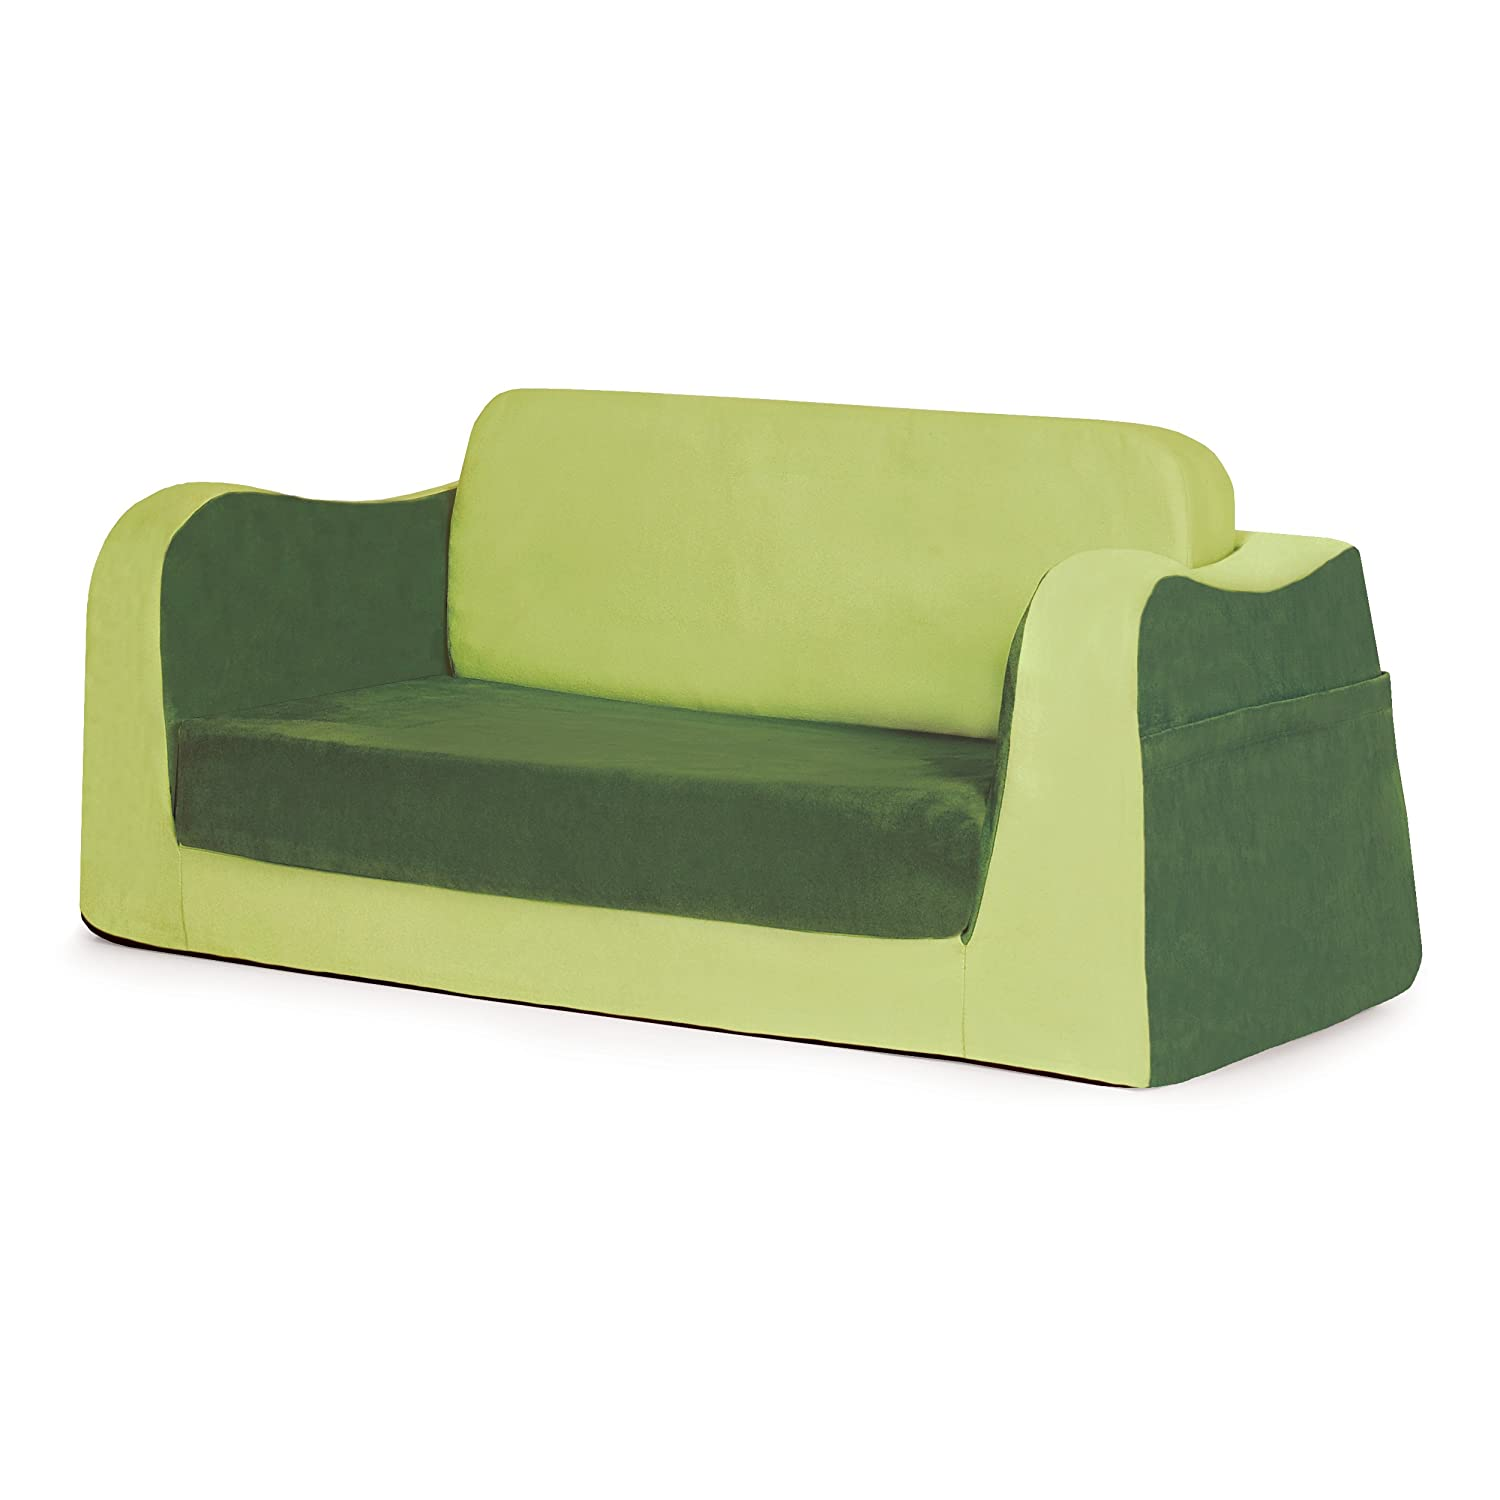 P'kolino PKFFLSAGR Little Reader Sofa - Green P' kolino